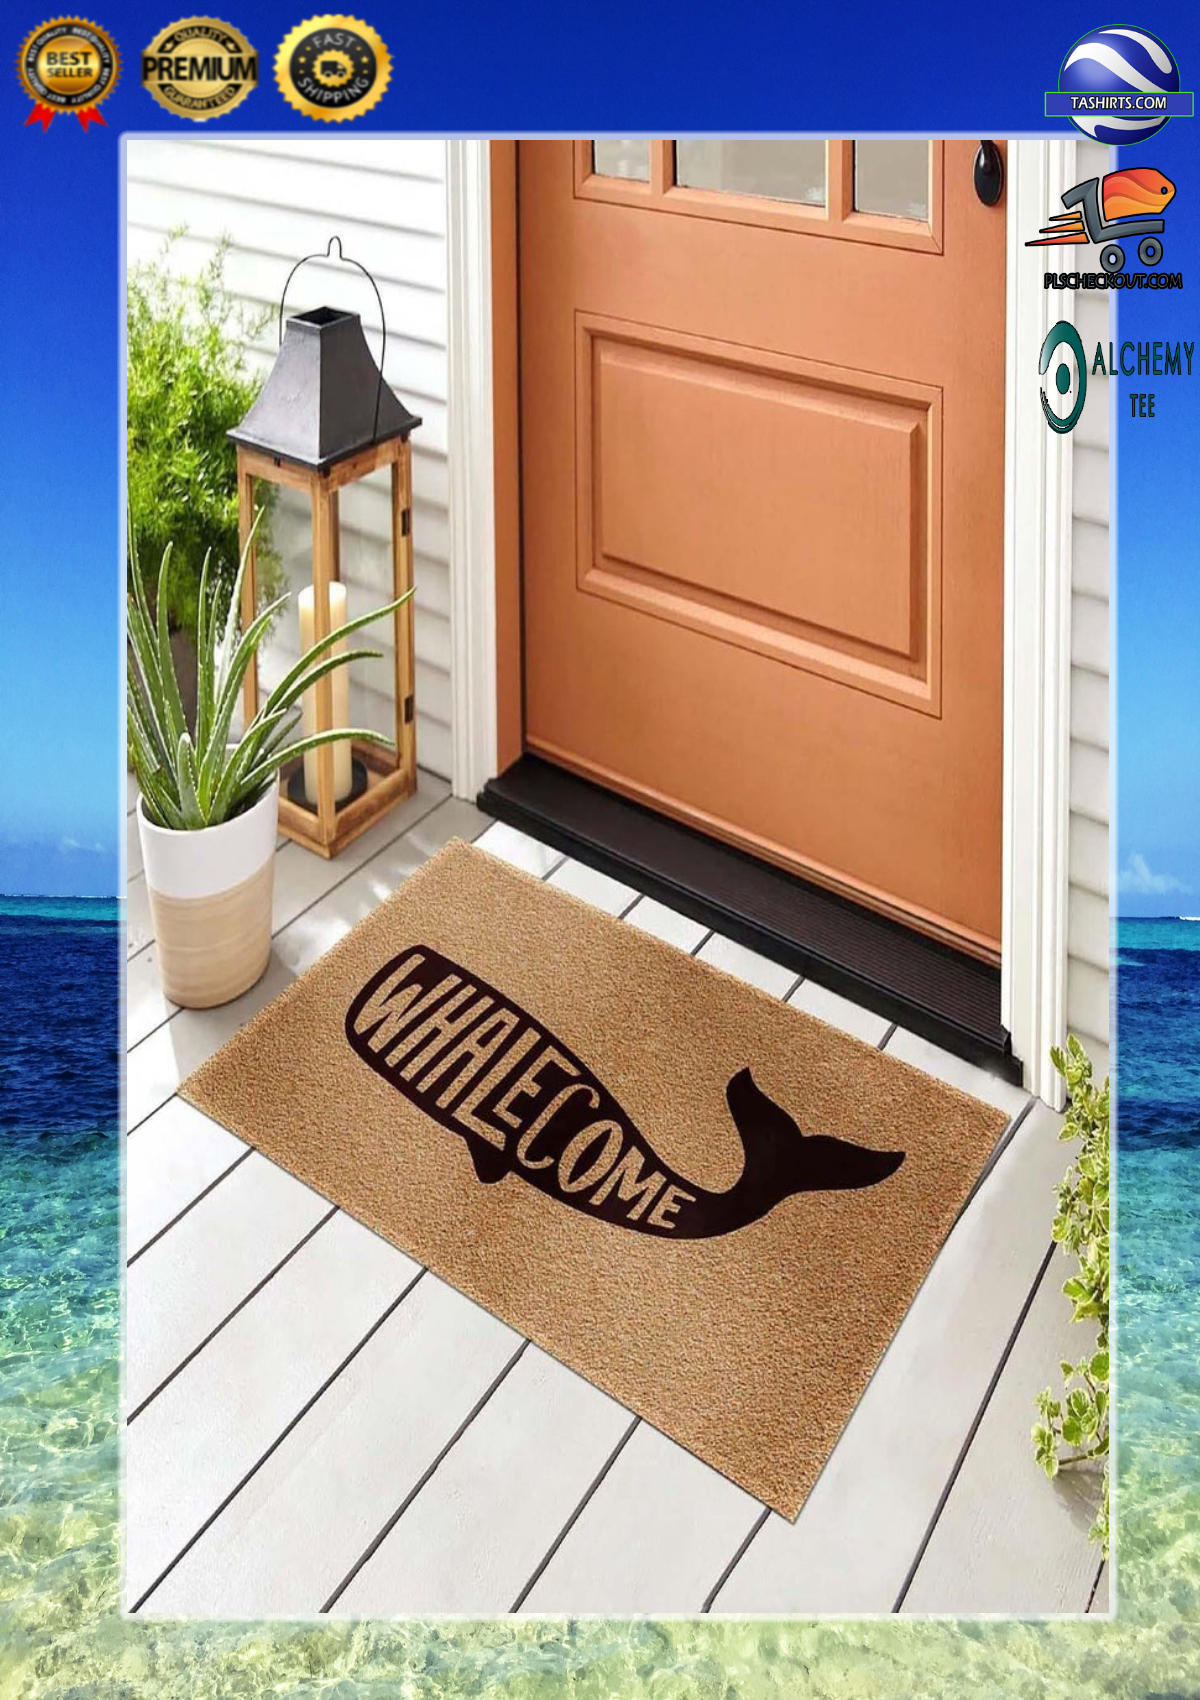 Whalecome whale doormat 2